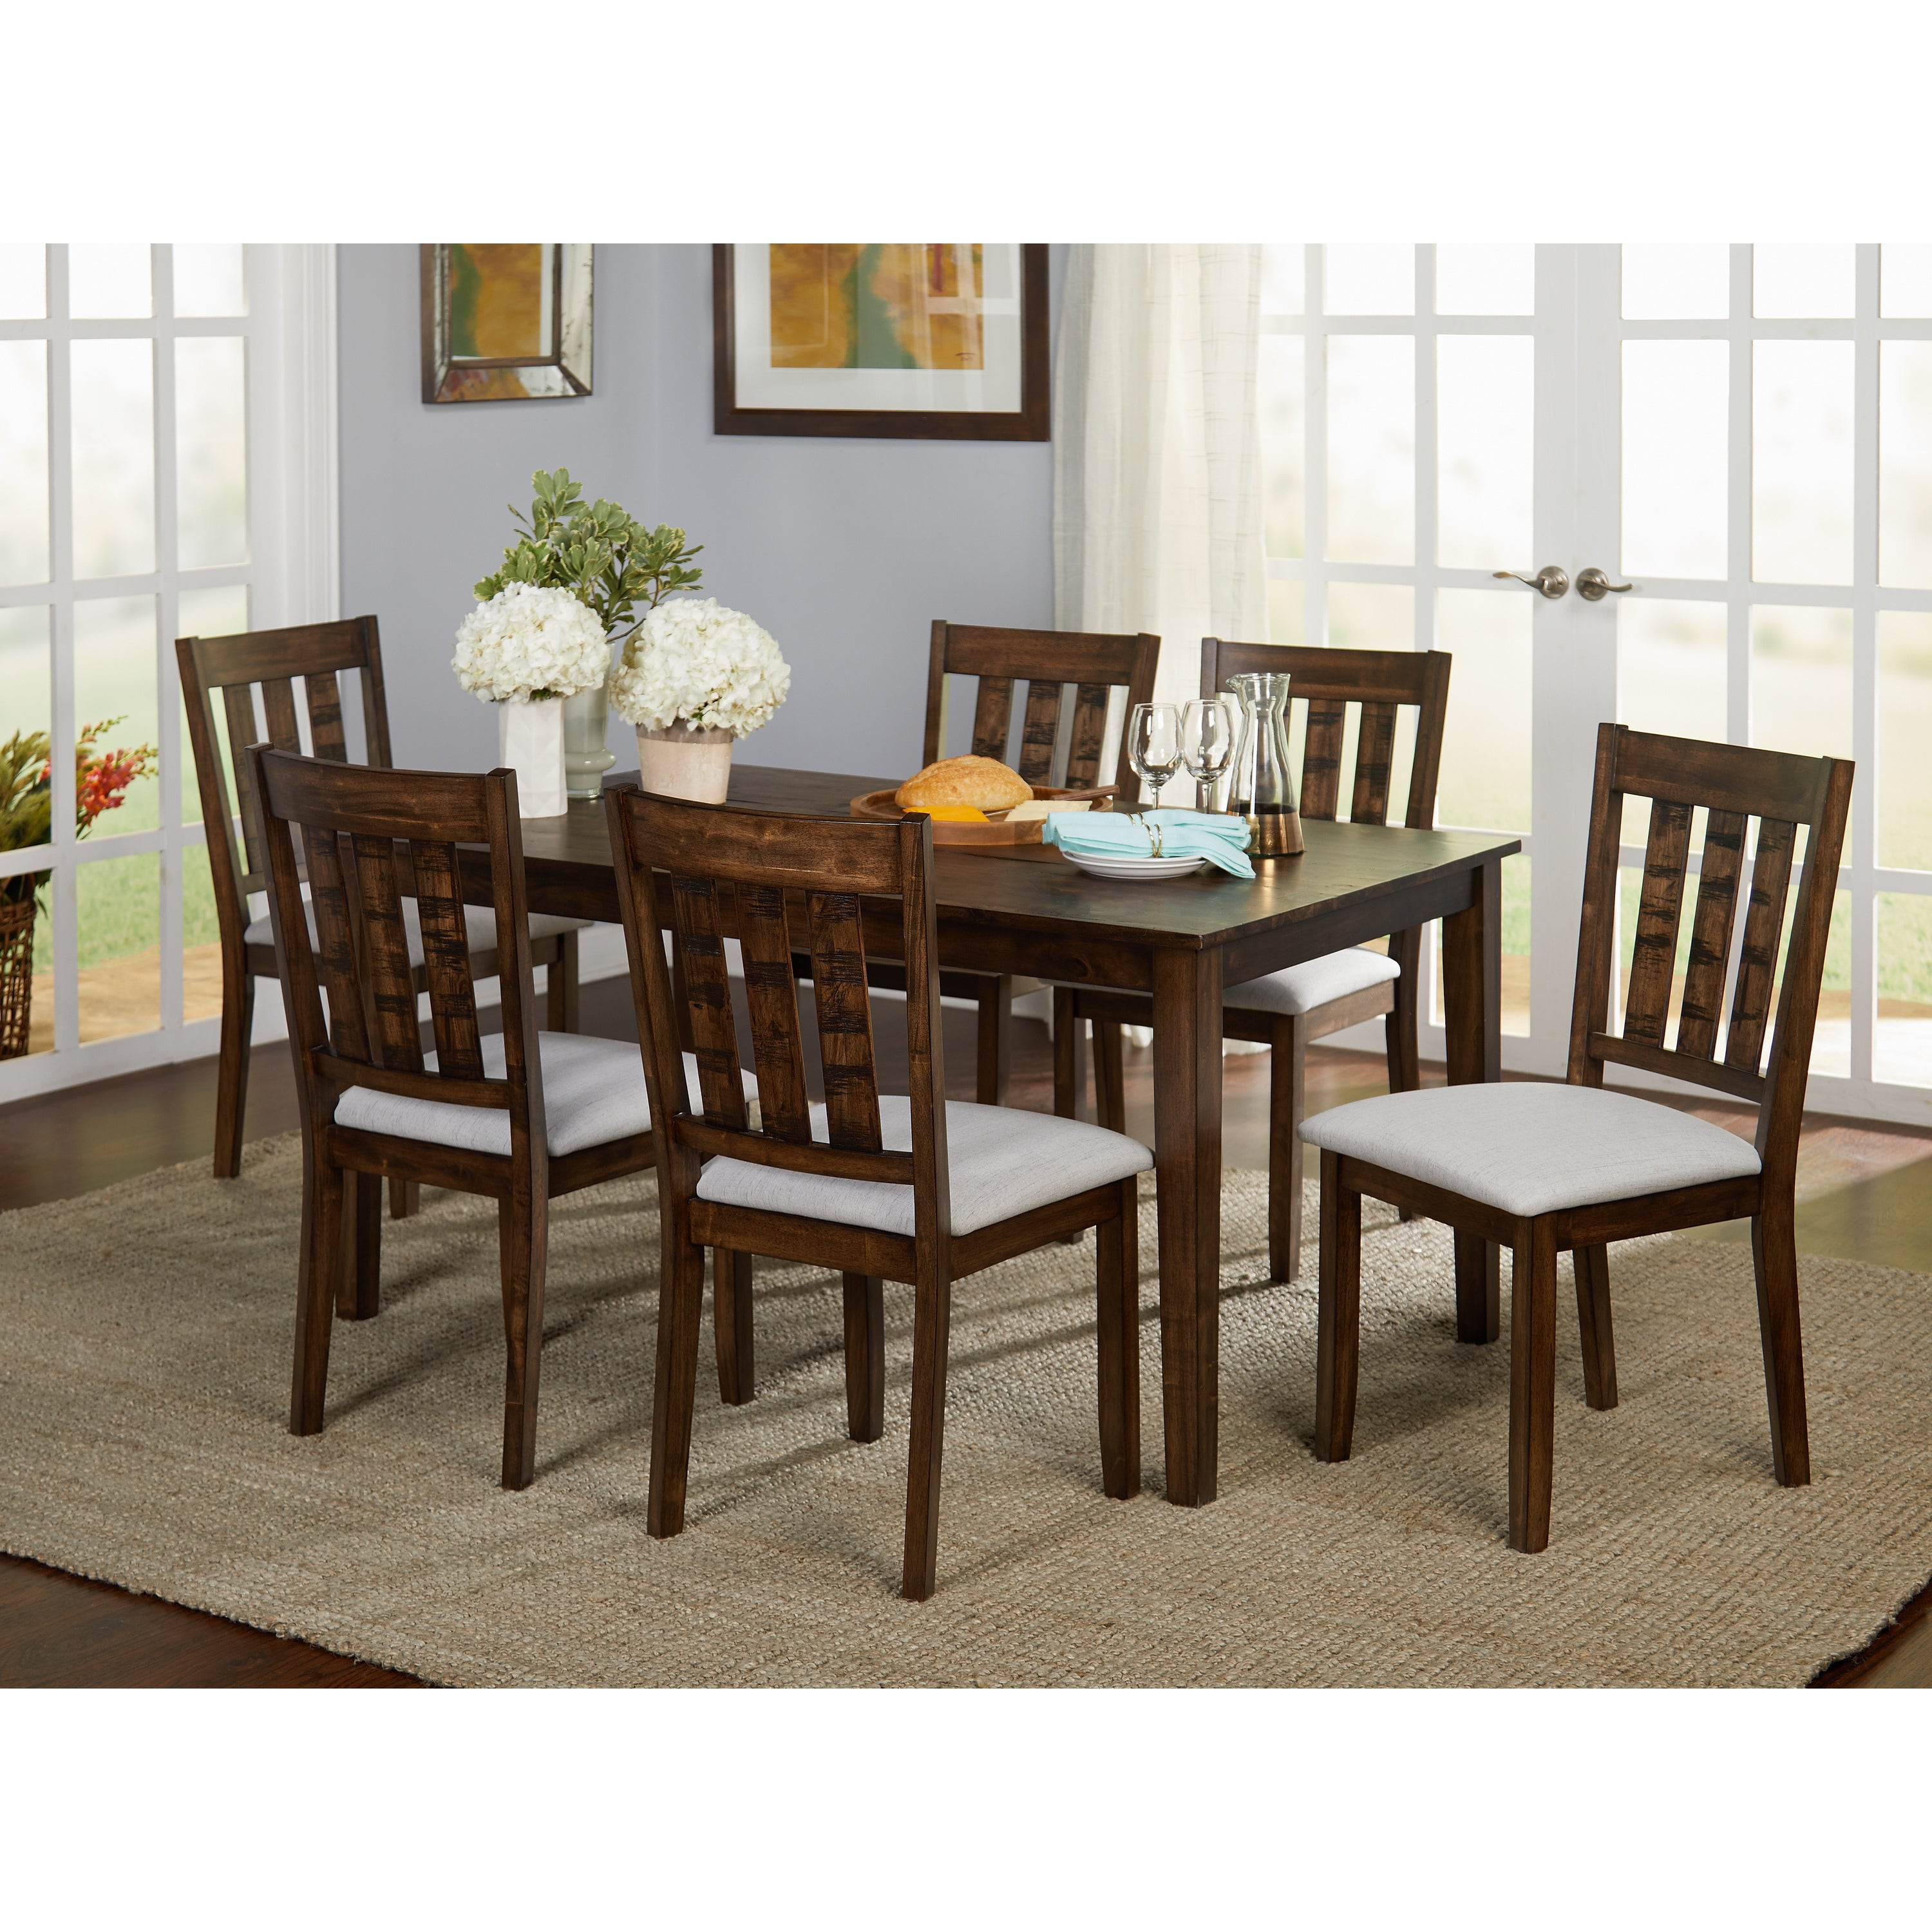 Buy Farmhouse Kitchen & Dining Room Tables Online At Overstock | Our With Newest Falmer 3 Piece Solid Wood Dining Sets (View 11 of 20)